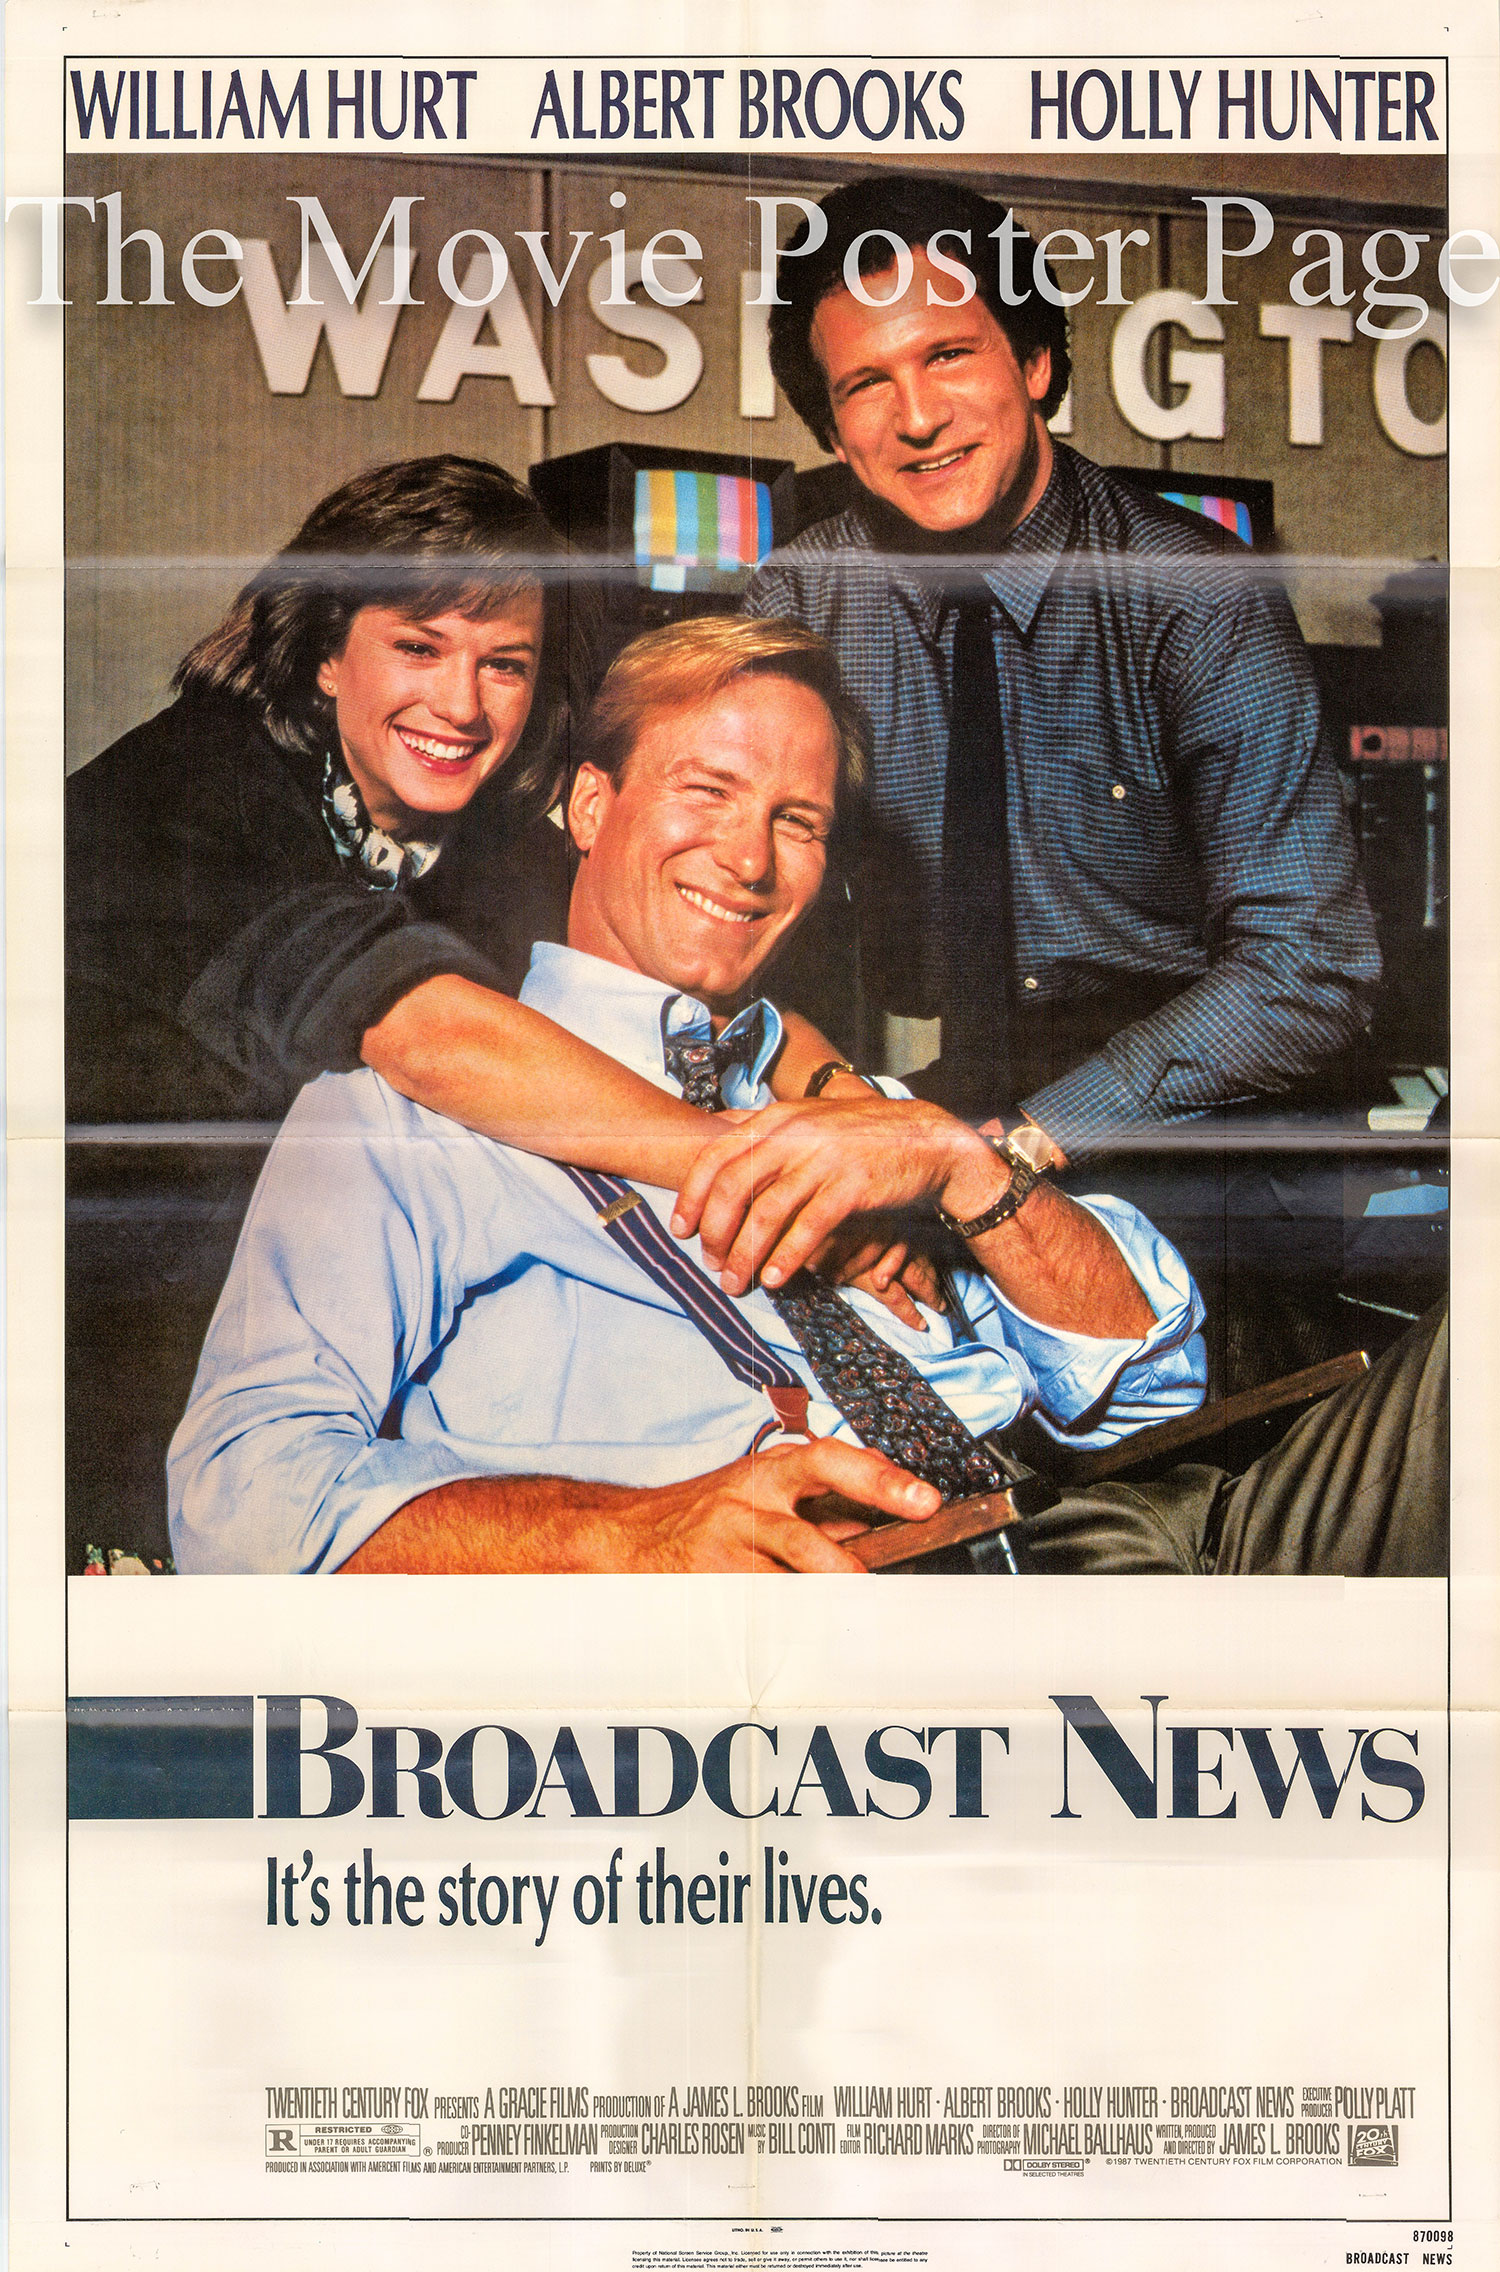 Pictured is a US one-sheet poster for the 1987 James L. Brooks film Broadcast News starring William Hurt as Tom Grunick.